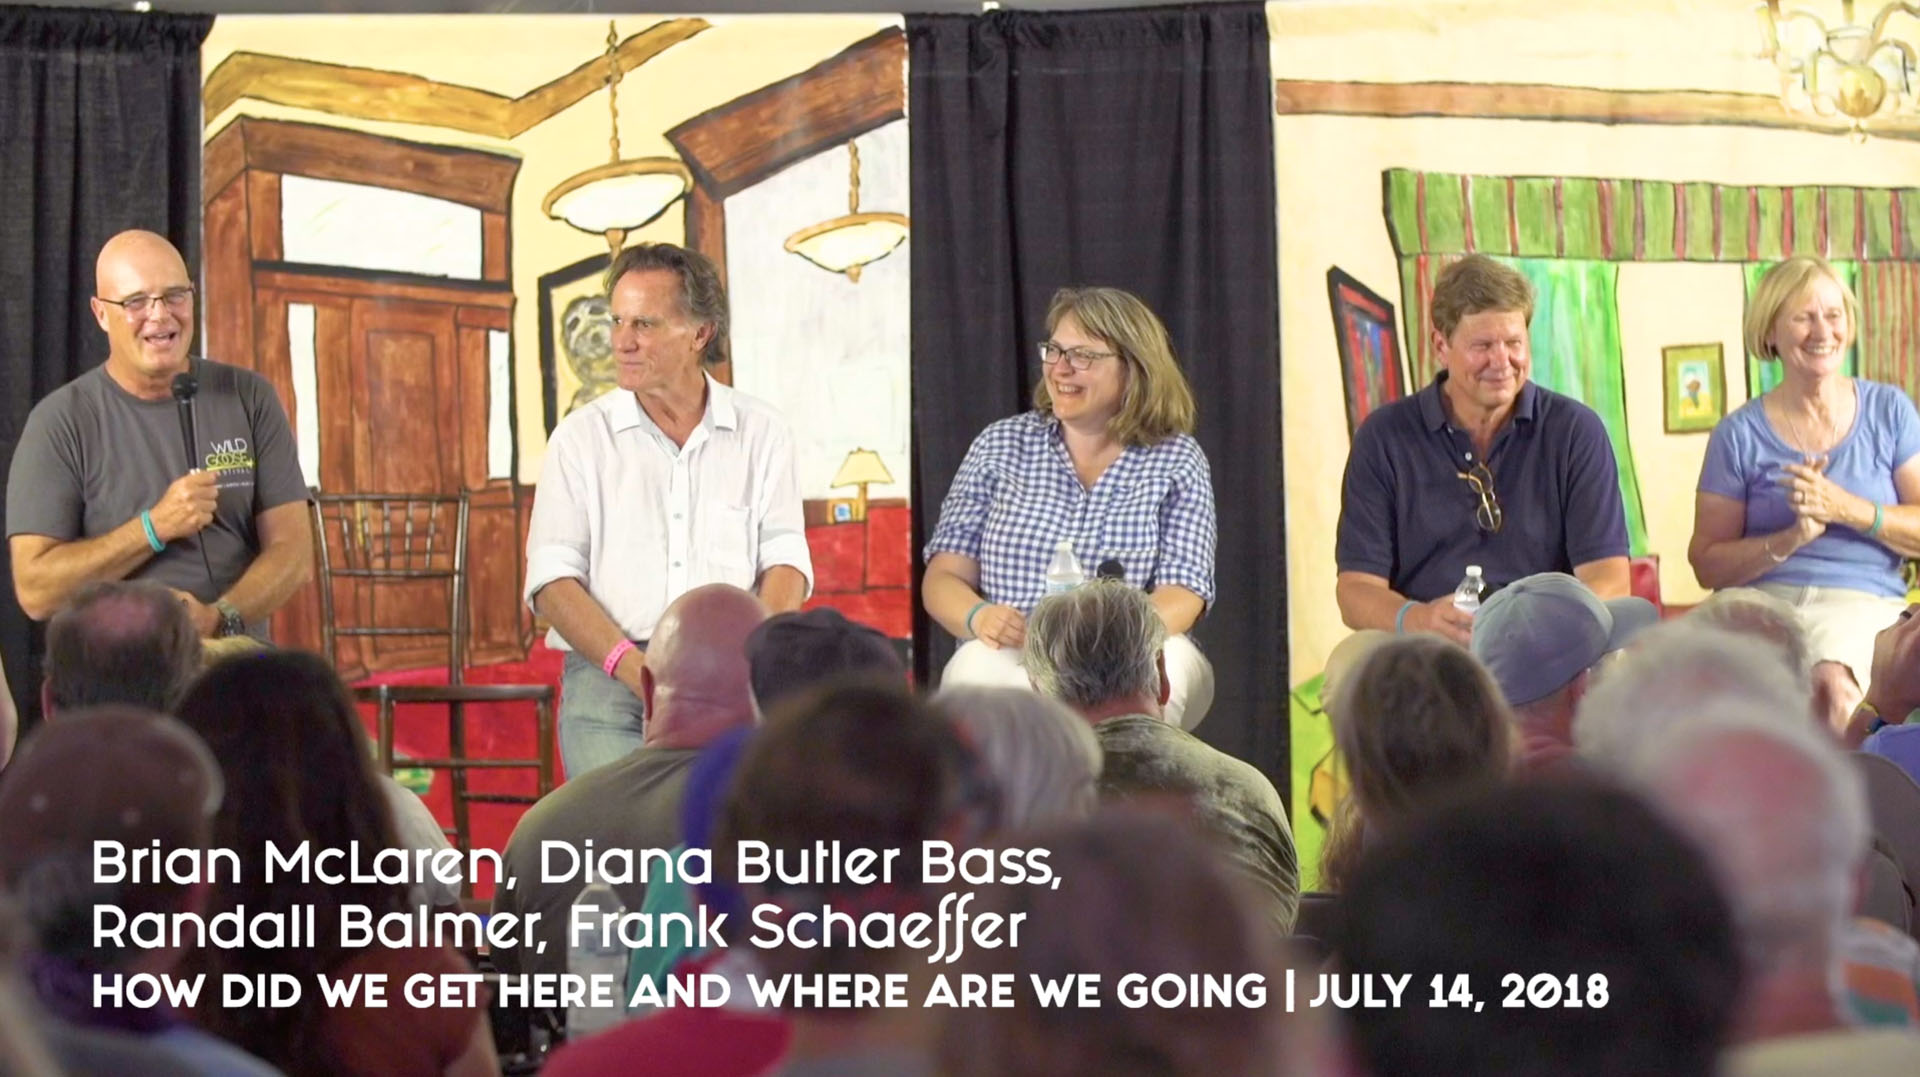 How did we get here and where are we going - Brian McLaren, Diana Butler Bass, Randall Balmer, Frank Schaeffer